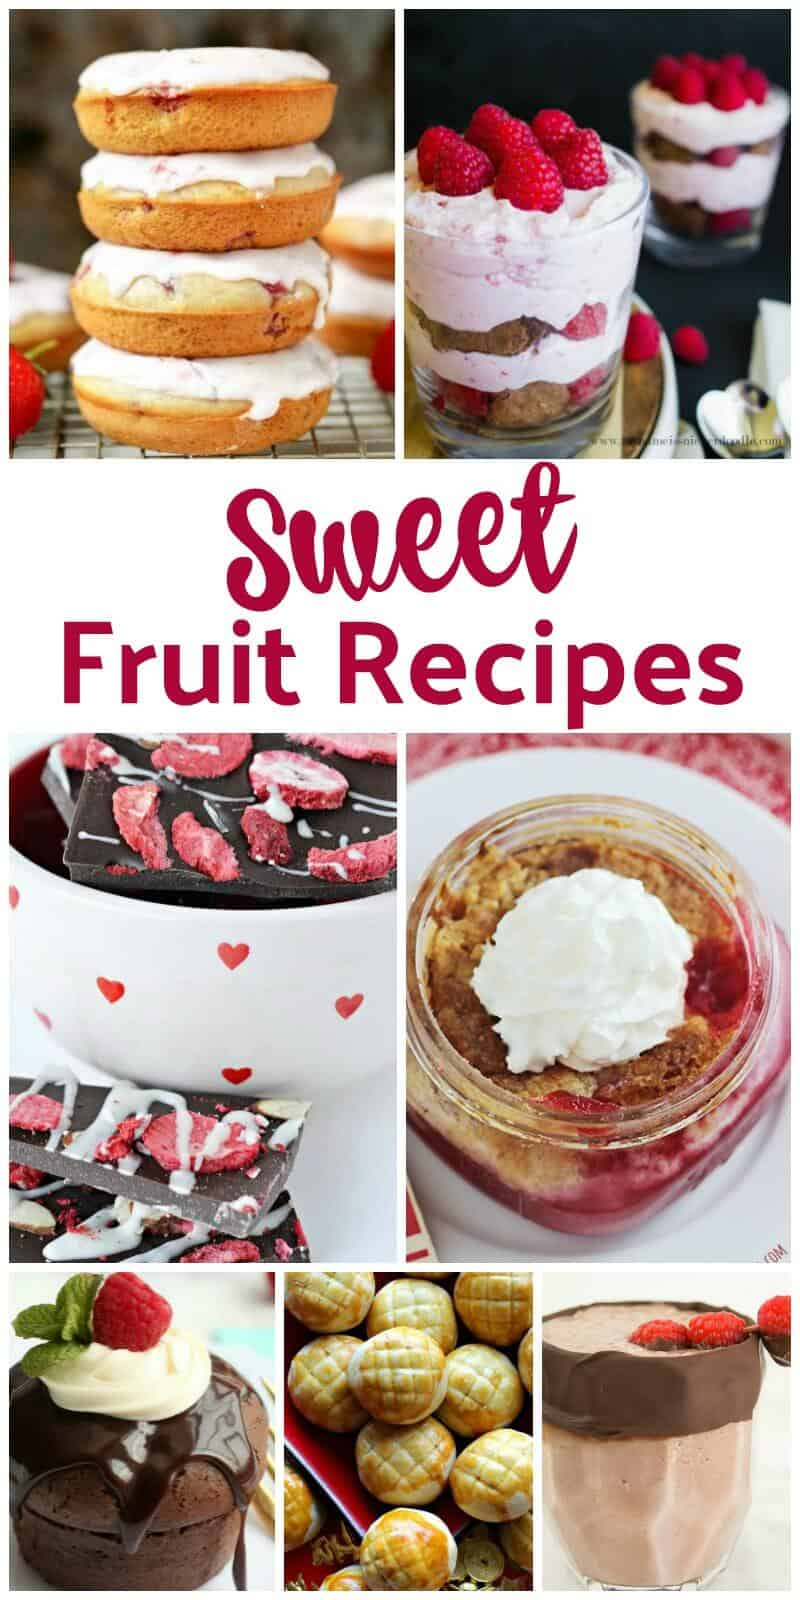 Discover heavenly dessert recipes that will make any special occasion or everyday meal shine. Whether you're looking for chocolate desserts or strawberry desserts, the delectable dessert recipes your friends and family will love.